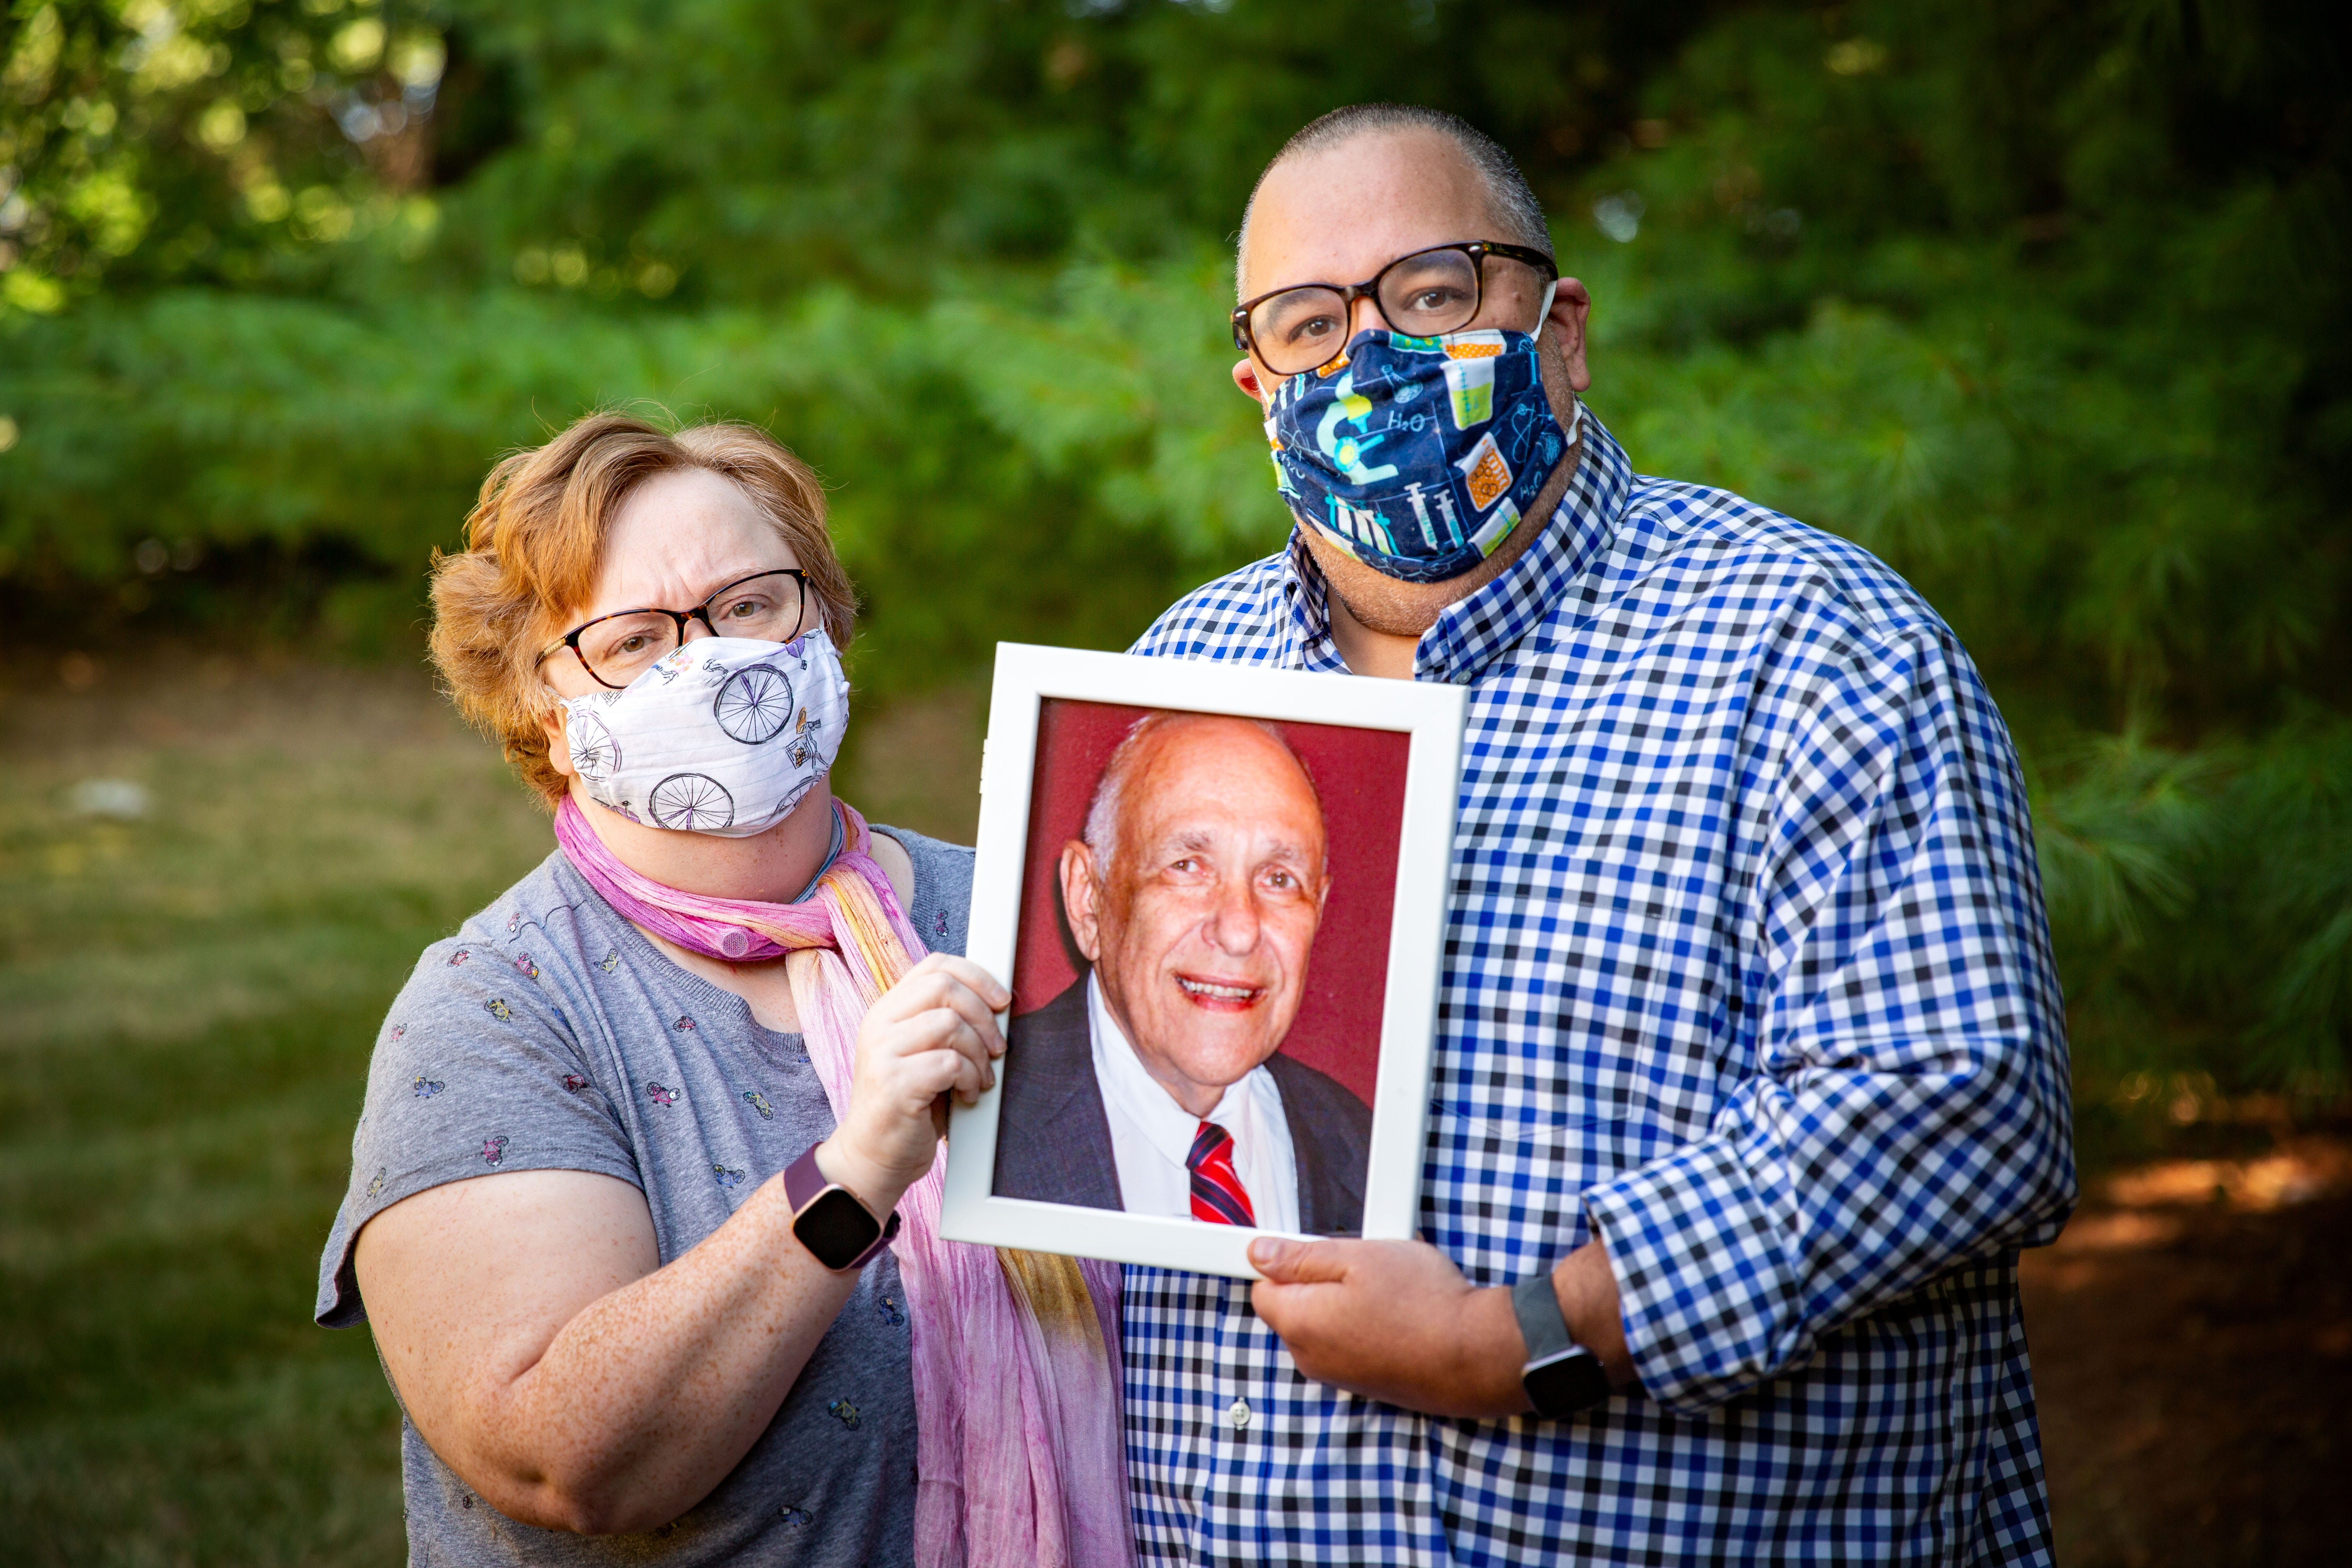 Ross Daniels and his wife, Amy, poses for a photo with a portrait of his father, Jay Daniels